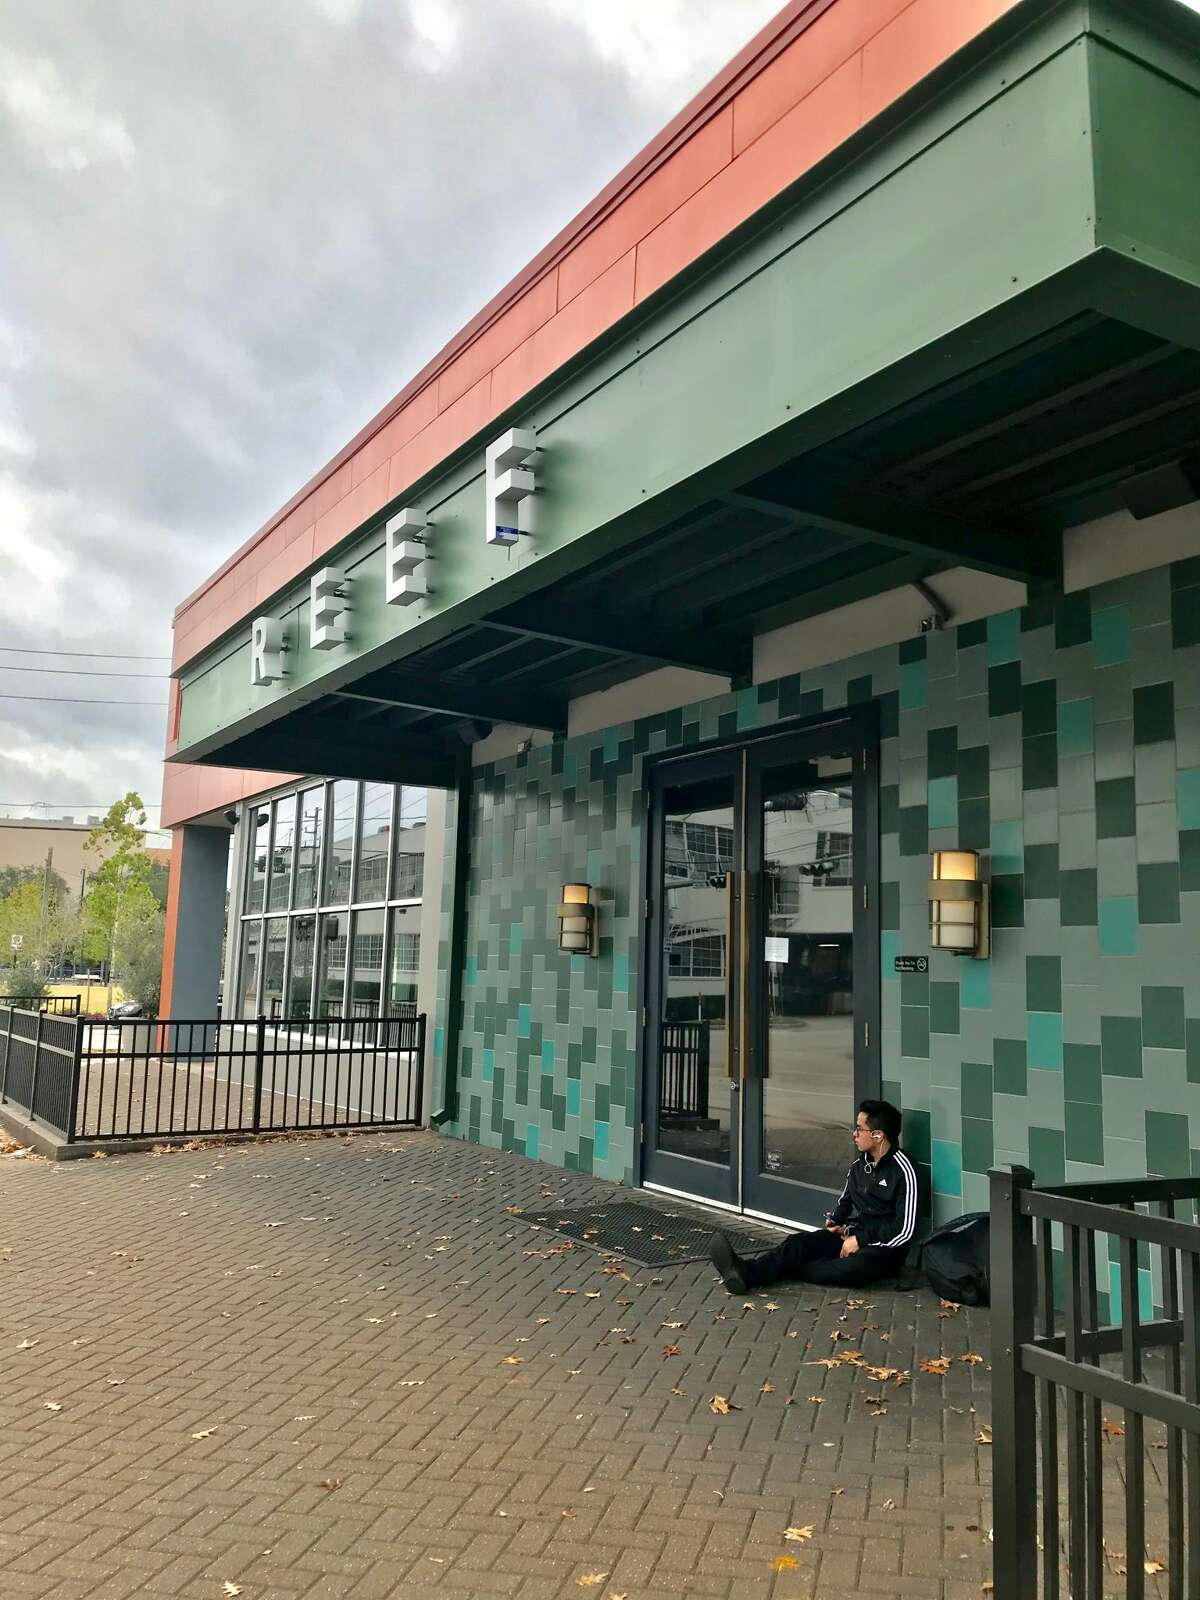 Reef, at 2600 Travis St., from chef Bryan Caswell closed its doors on Monday, a representative for the restaurant confirmed via email Tuesday.